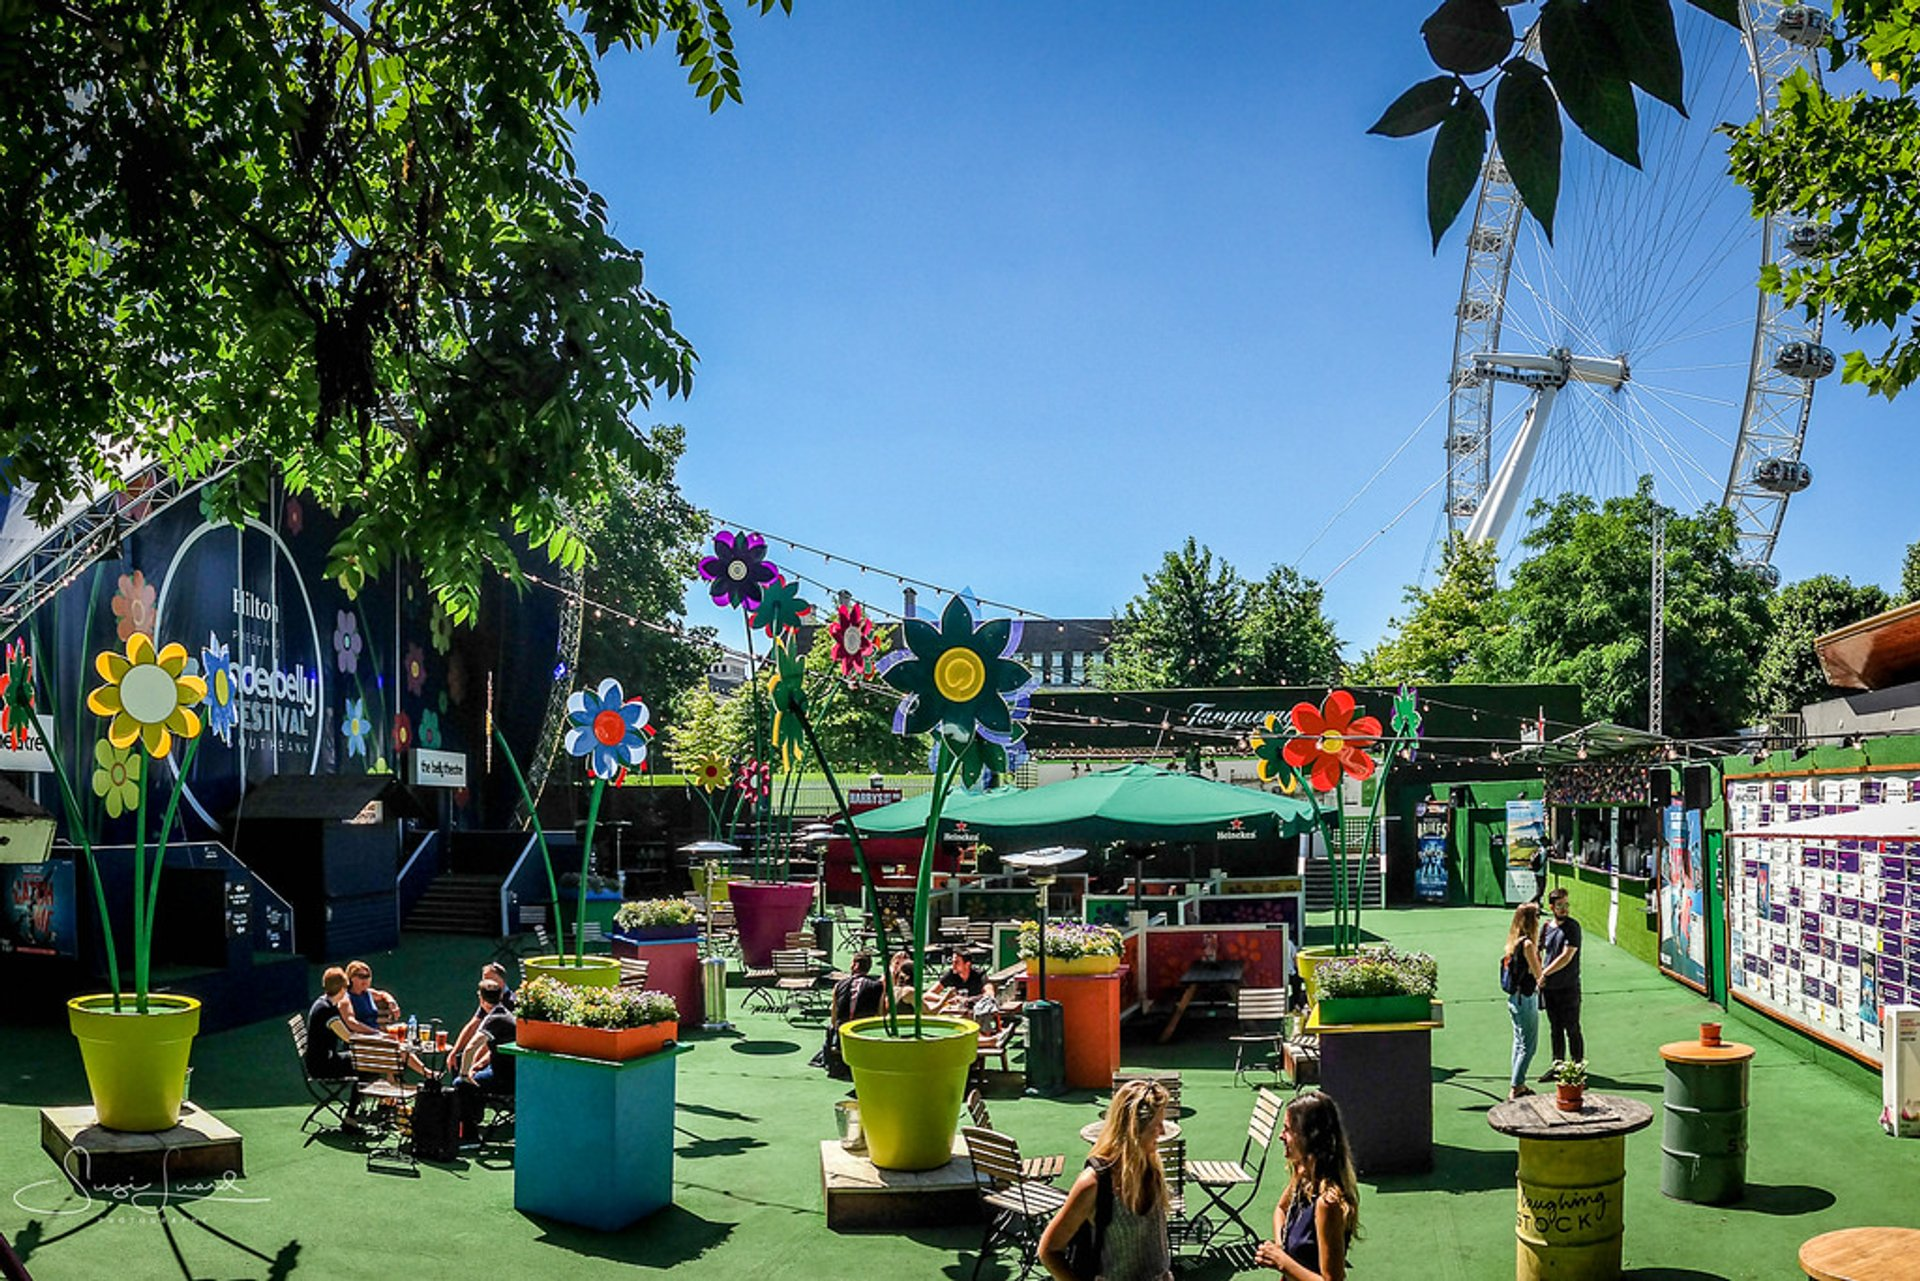 Underbelly Festival Southbank in London - Best Season 2020